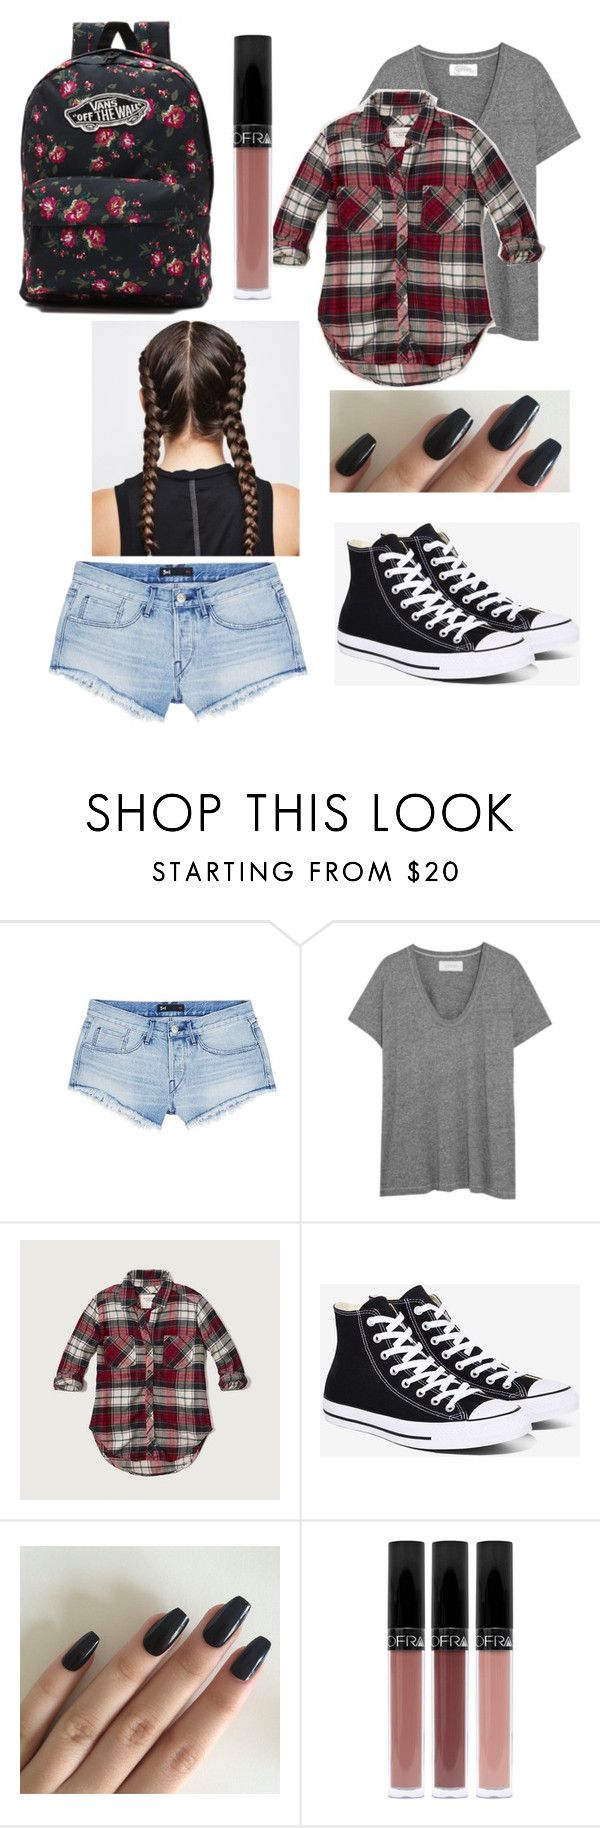 """""""School"""" by kamryn0606 ❤ liked on Polyvore featuring 3x1, The Great, Abercrombie & Fitch, Converse and Vans"""